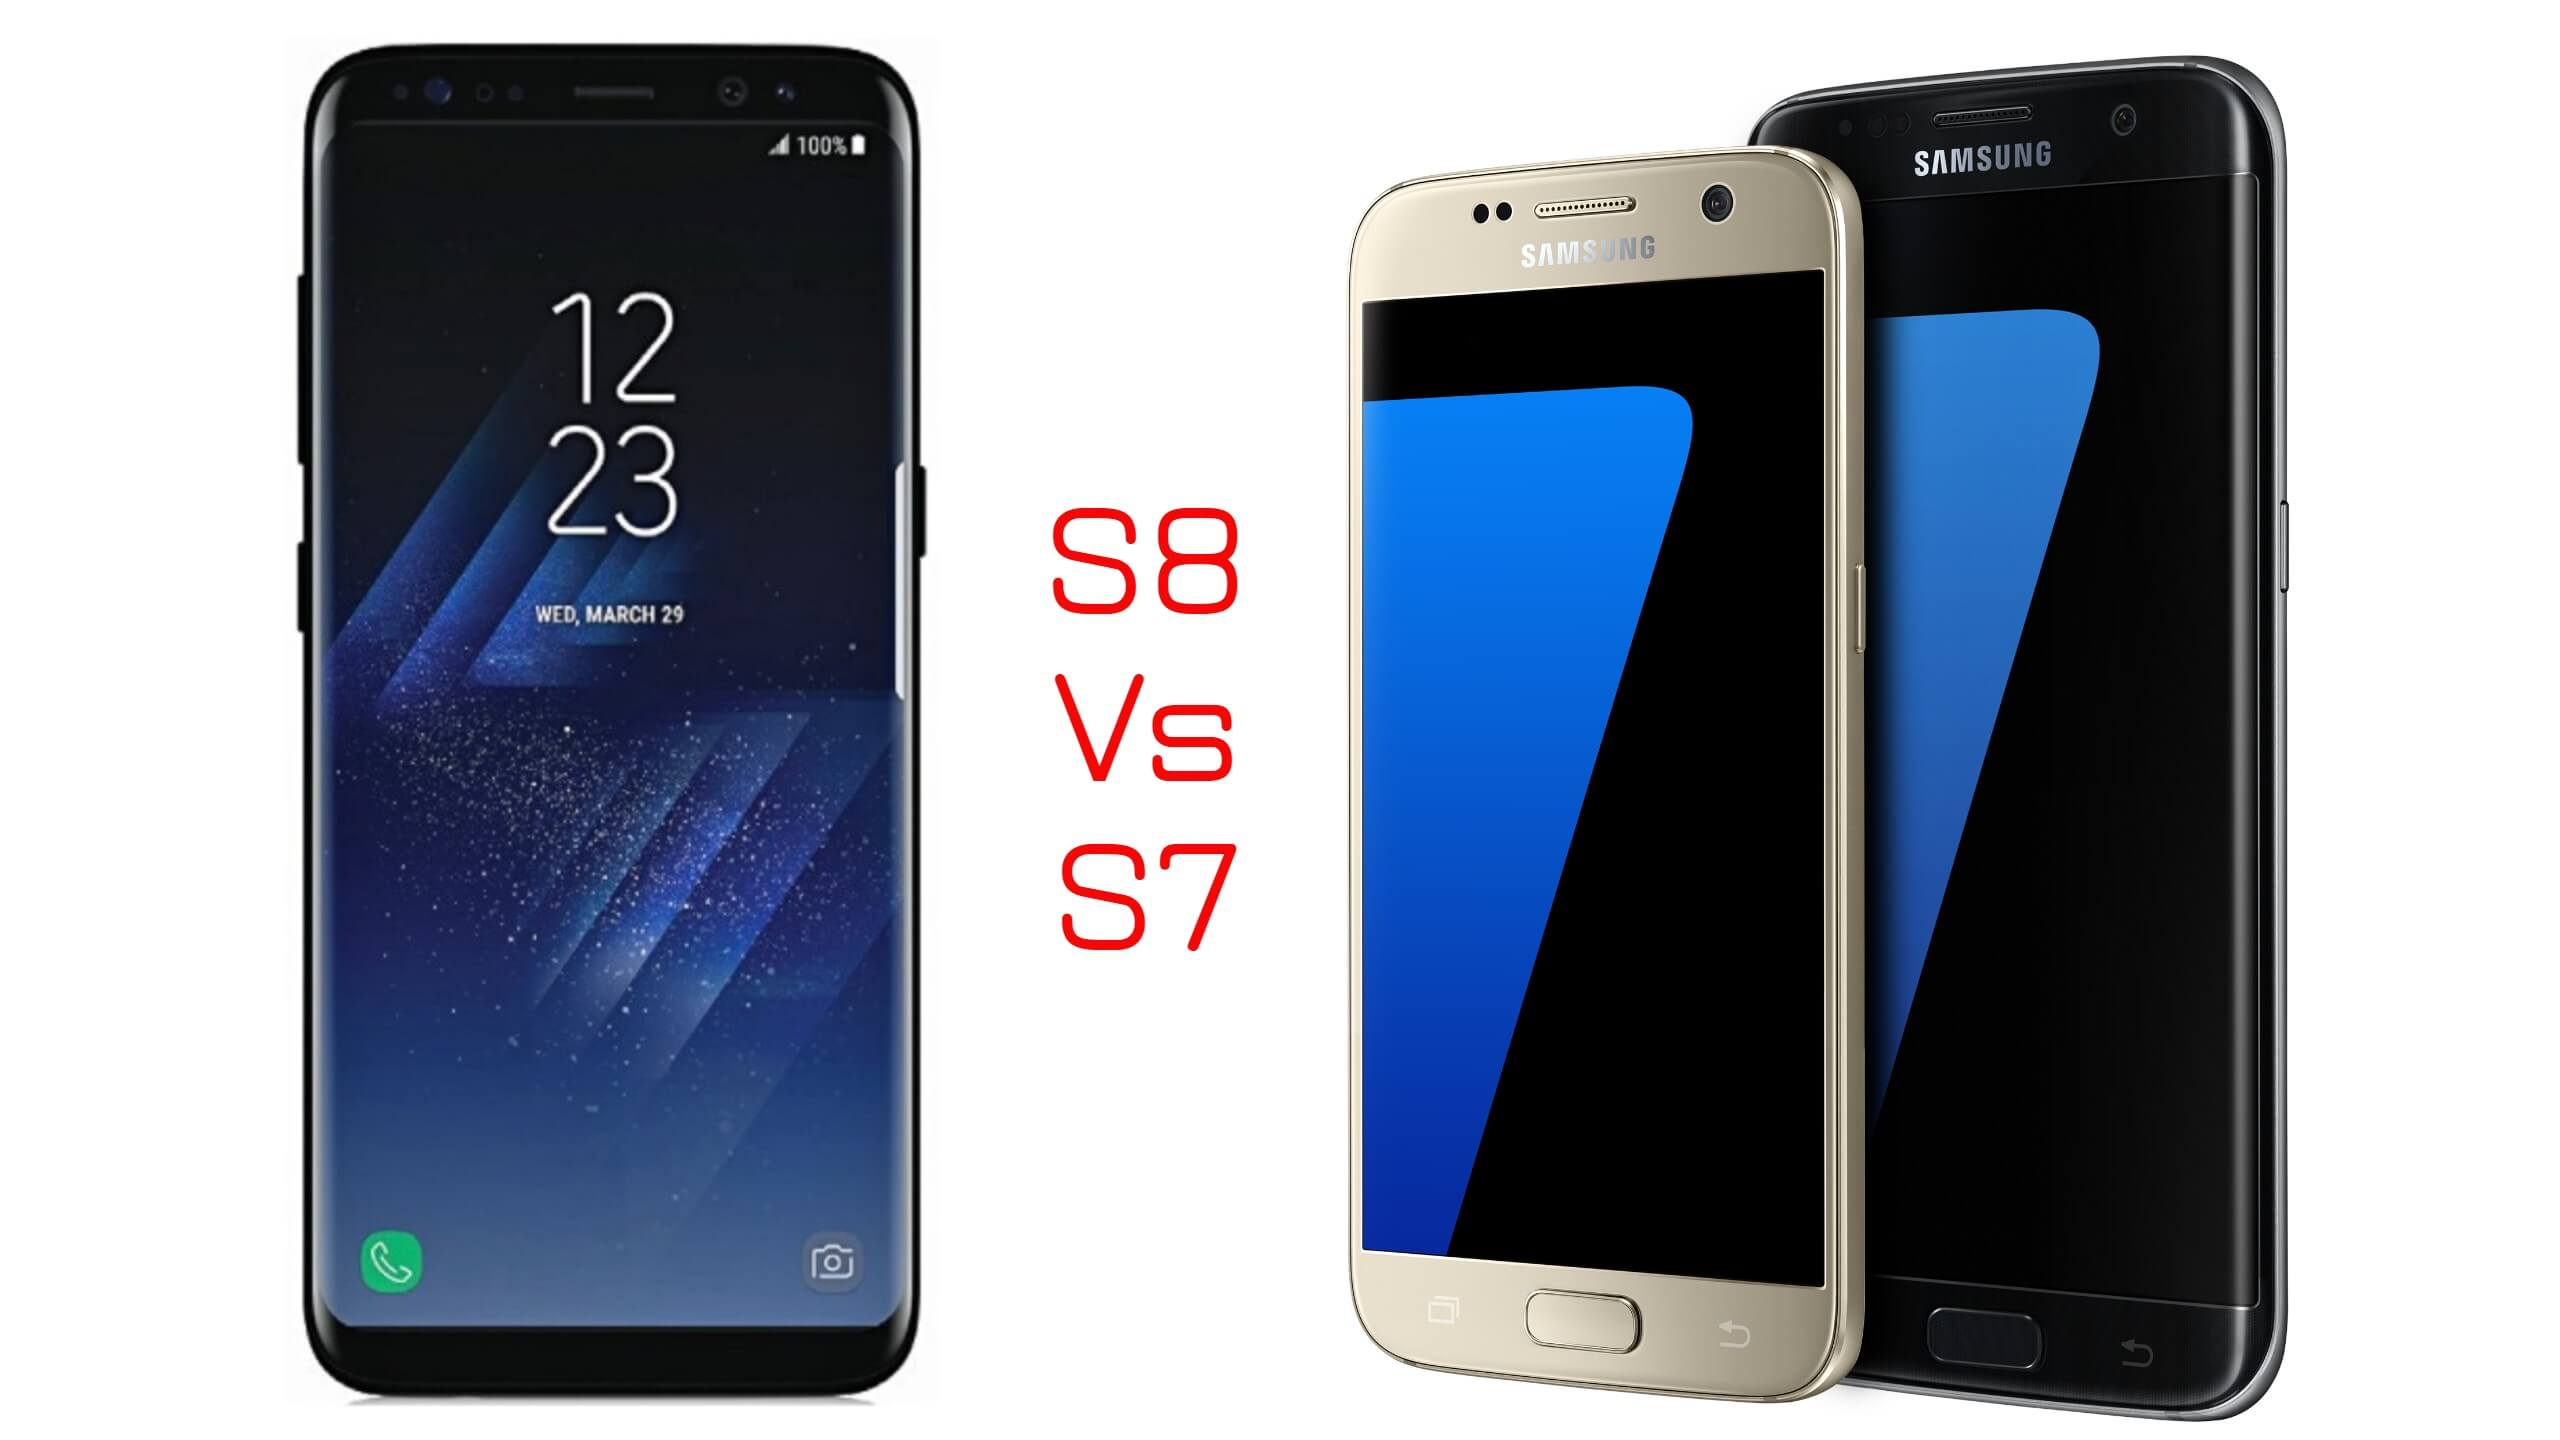 Comparing Samsung Galaxy s7 with Samsung Galaxy S8